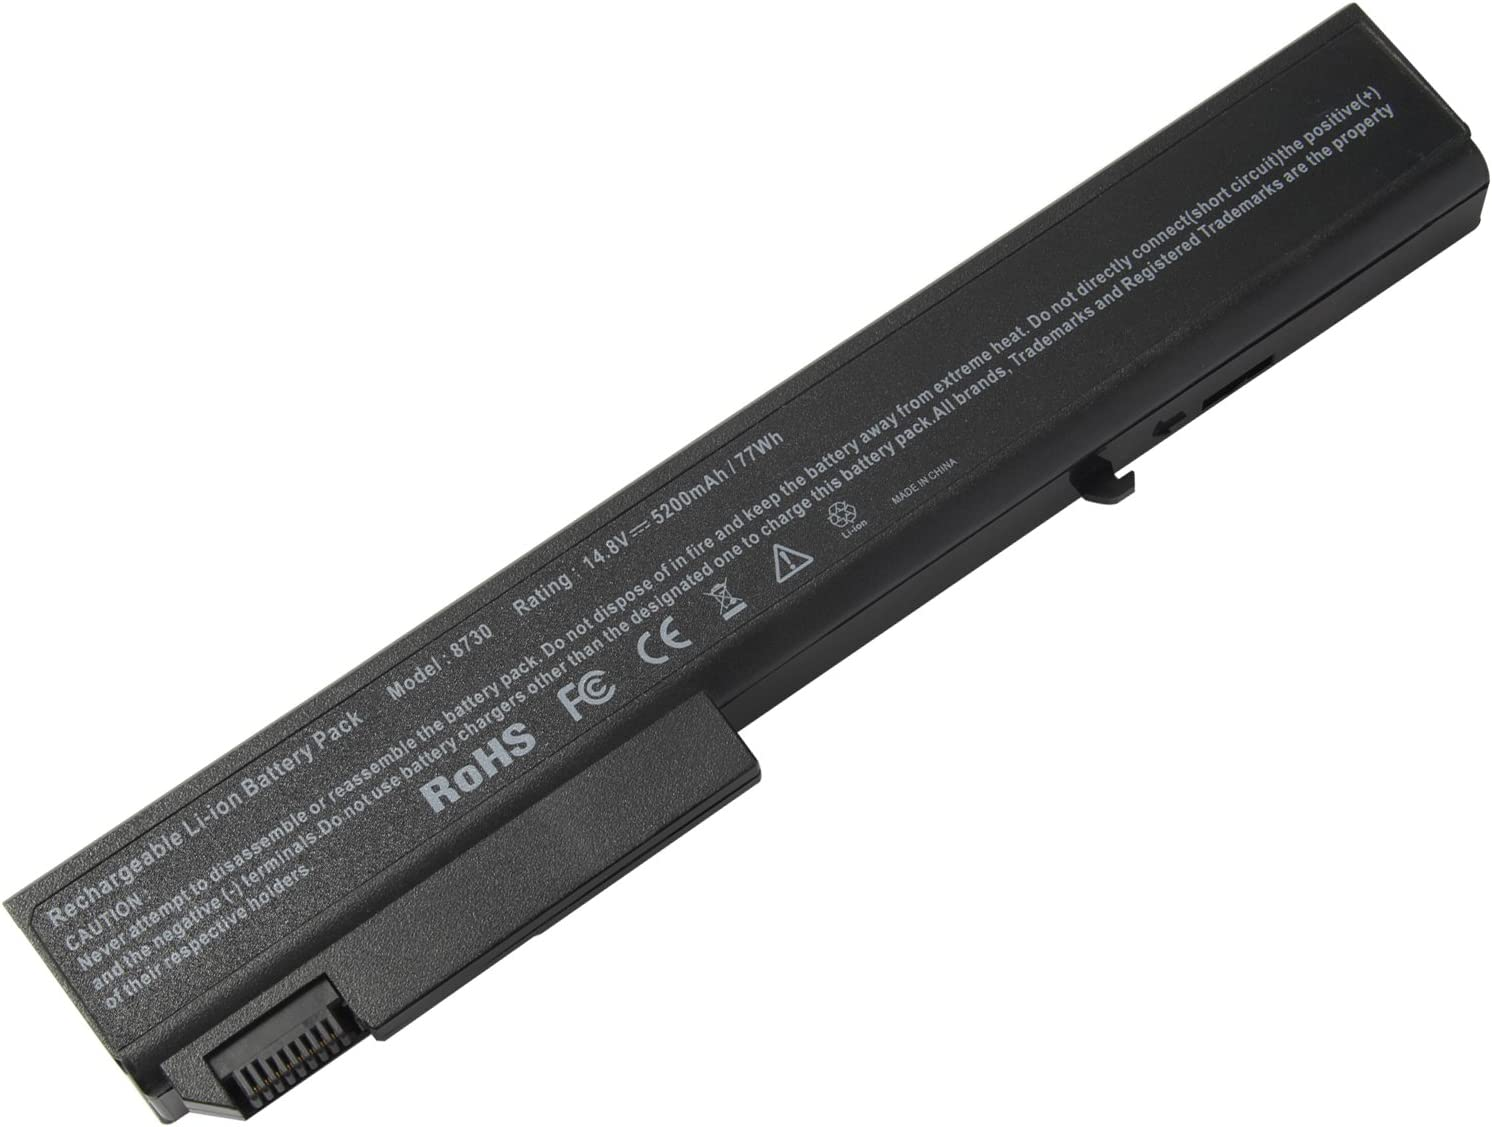 ARyee 8530P Laptop Battery Compatible with Hp EliteBook 8540P 8530P 8740W 8530W 8540W 8730W 493976-001 HSTNN-LB60 HSTNN-XB60 KU533AA(5200mAh 14.8V)